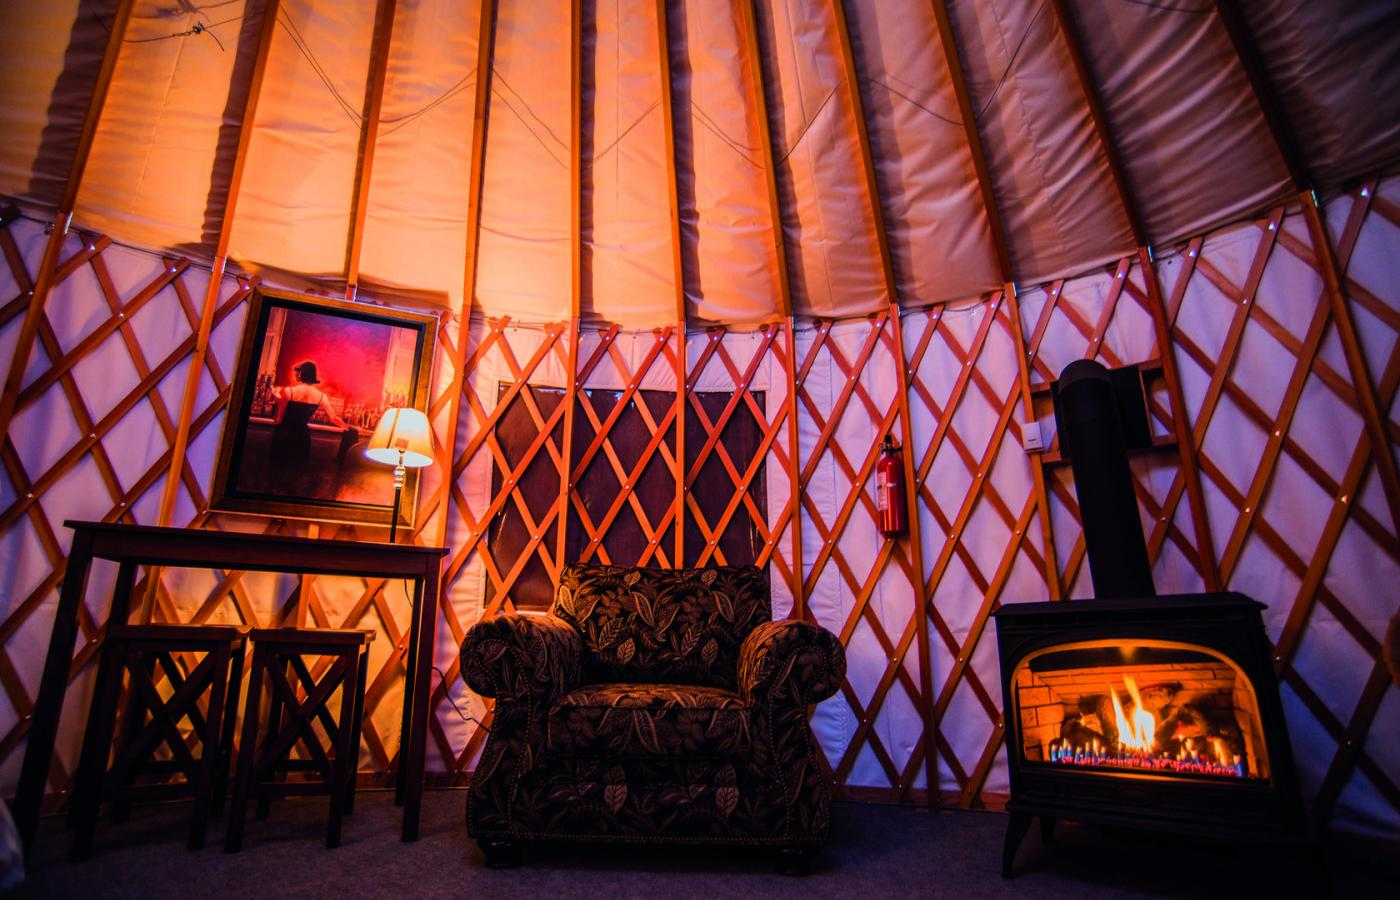 2 Seasons Adventures in Hay River, Northwest Territories, Canada has a Mongolian yurt that you'll never want to leave